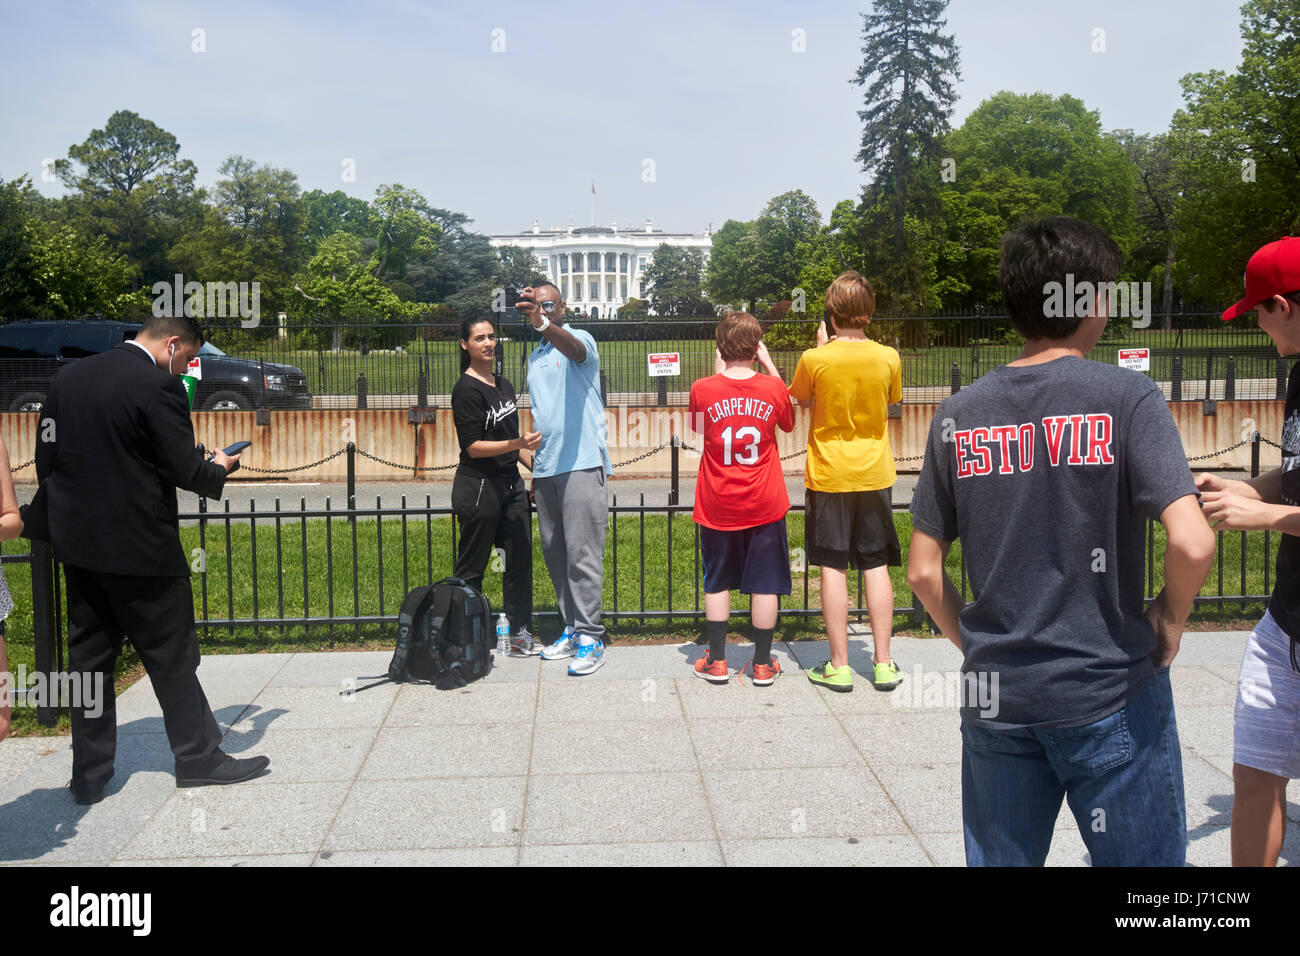 tourists take selfies outside security barriers on the south lawn of the white house Washington DC USA - Stock Image